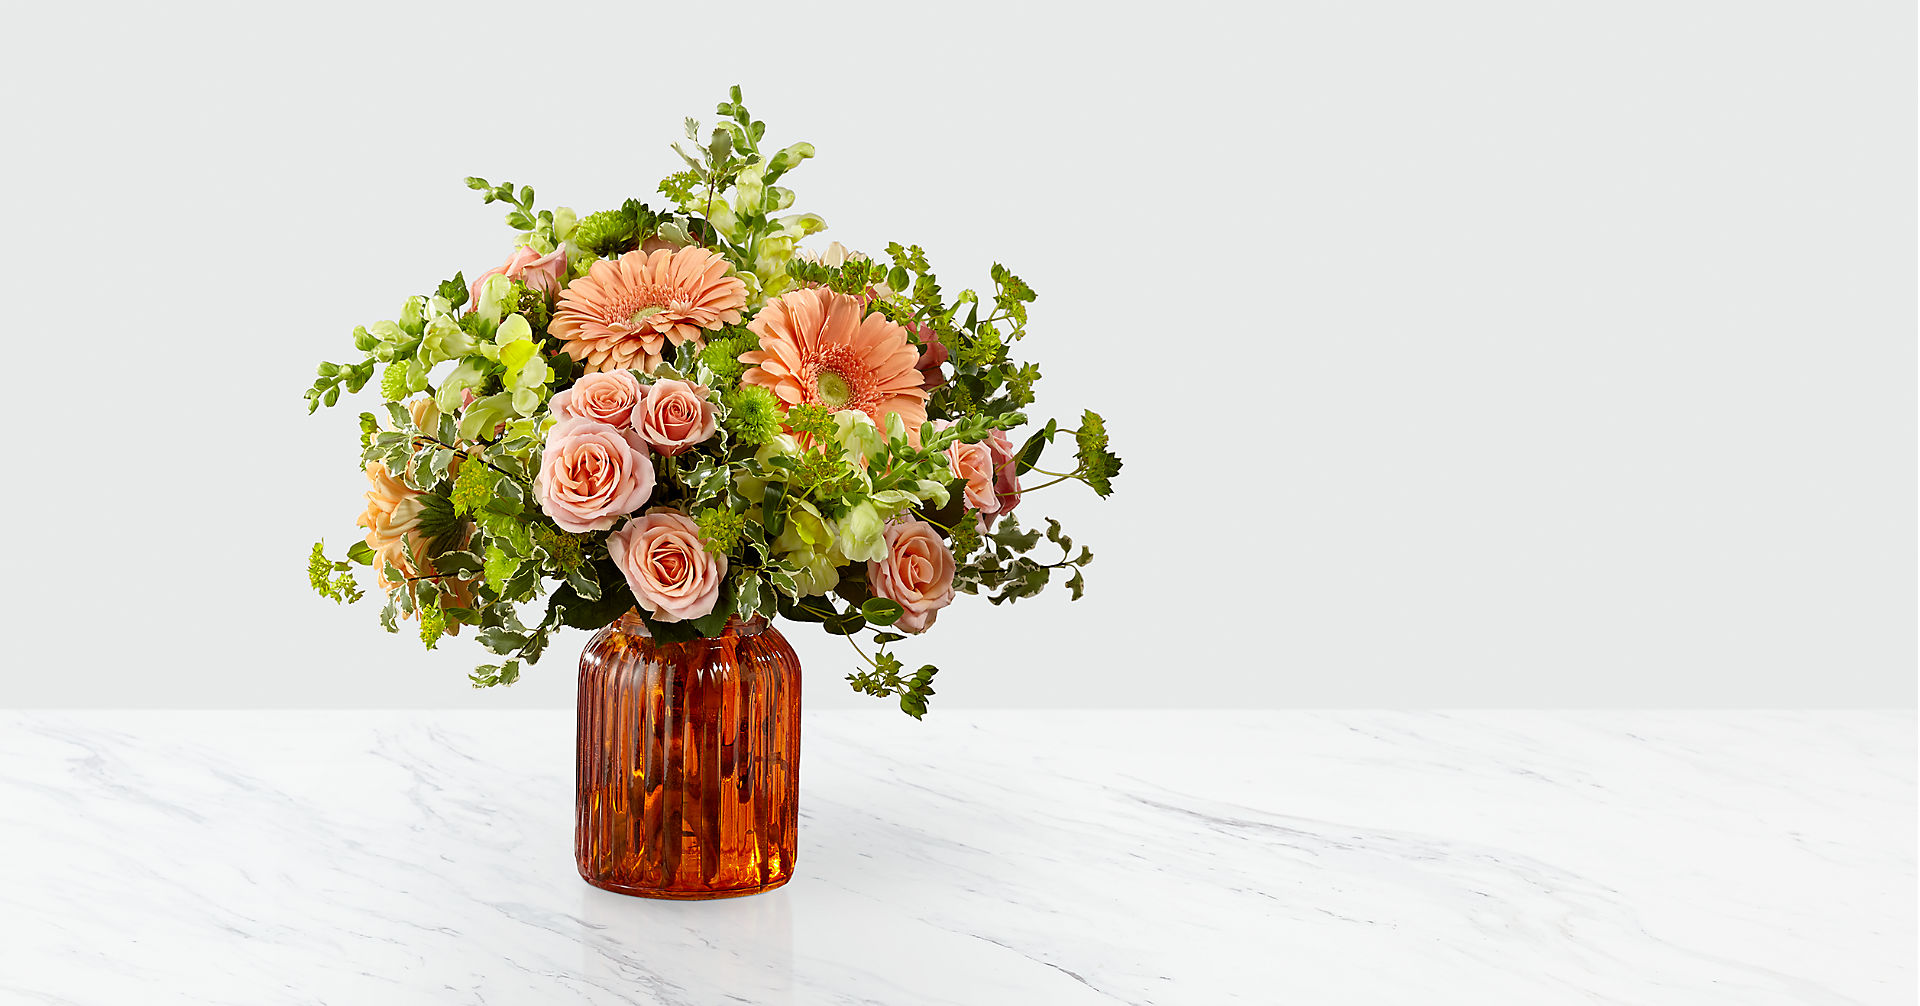 Peachy Keen™ Bouquet by FTD® - VASE INCLUDED - Image 1 Of 3